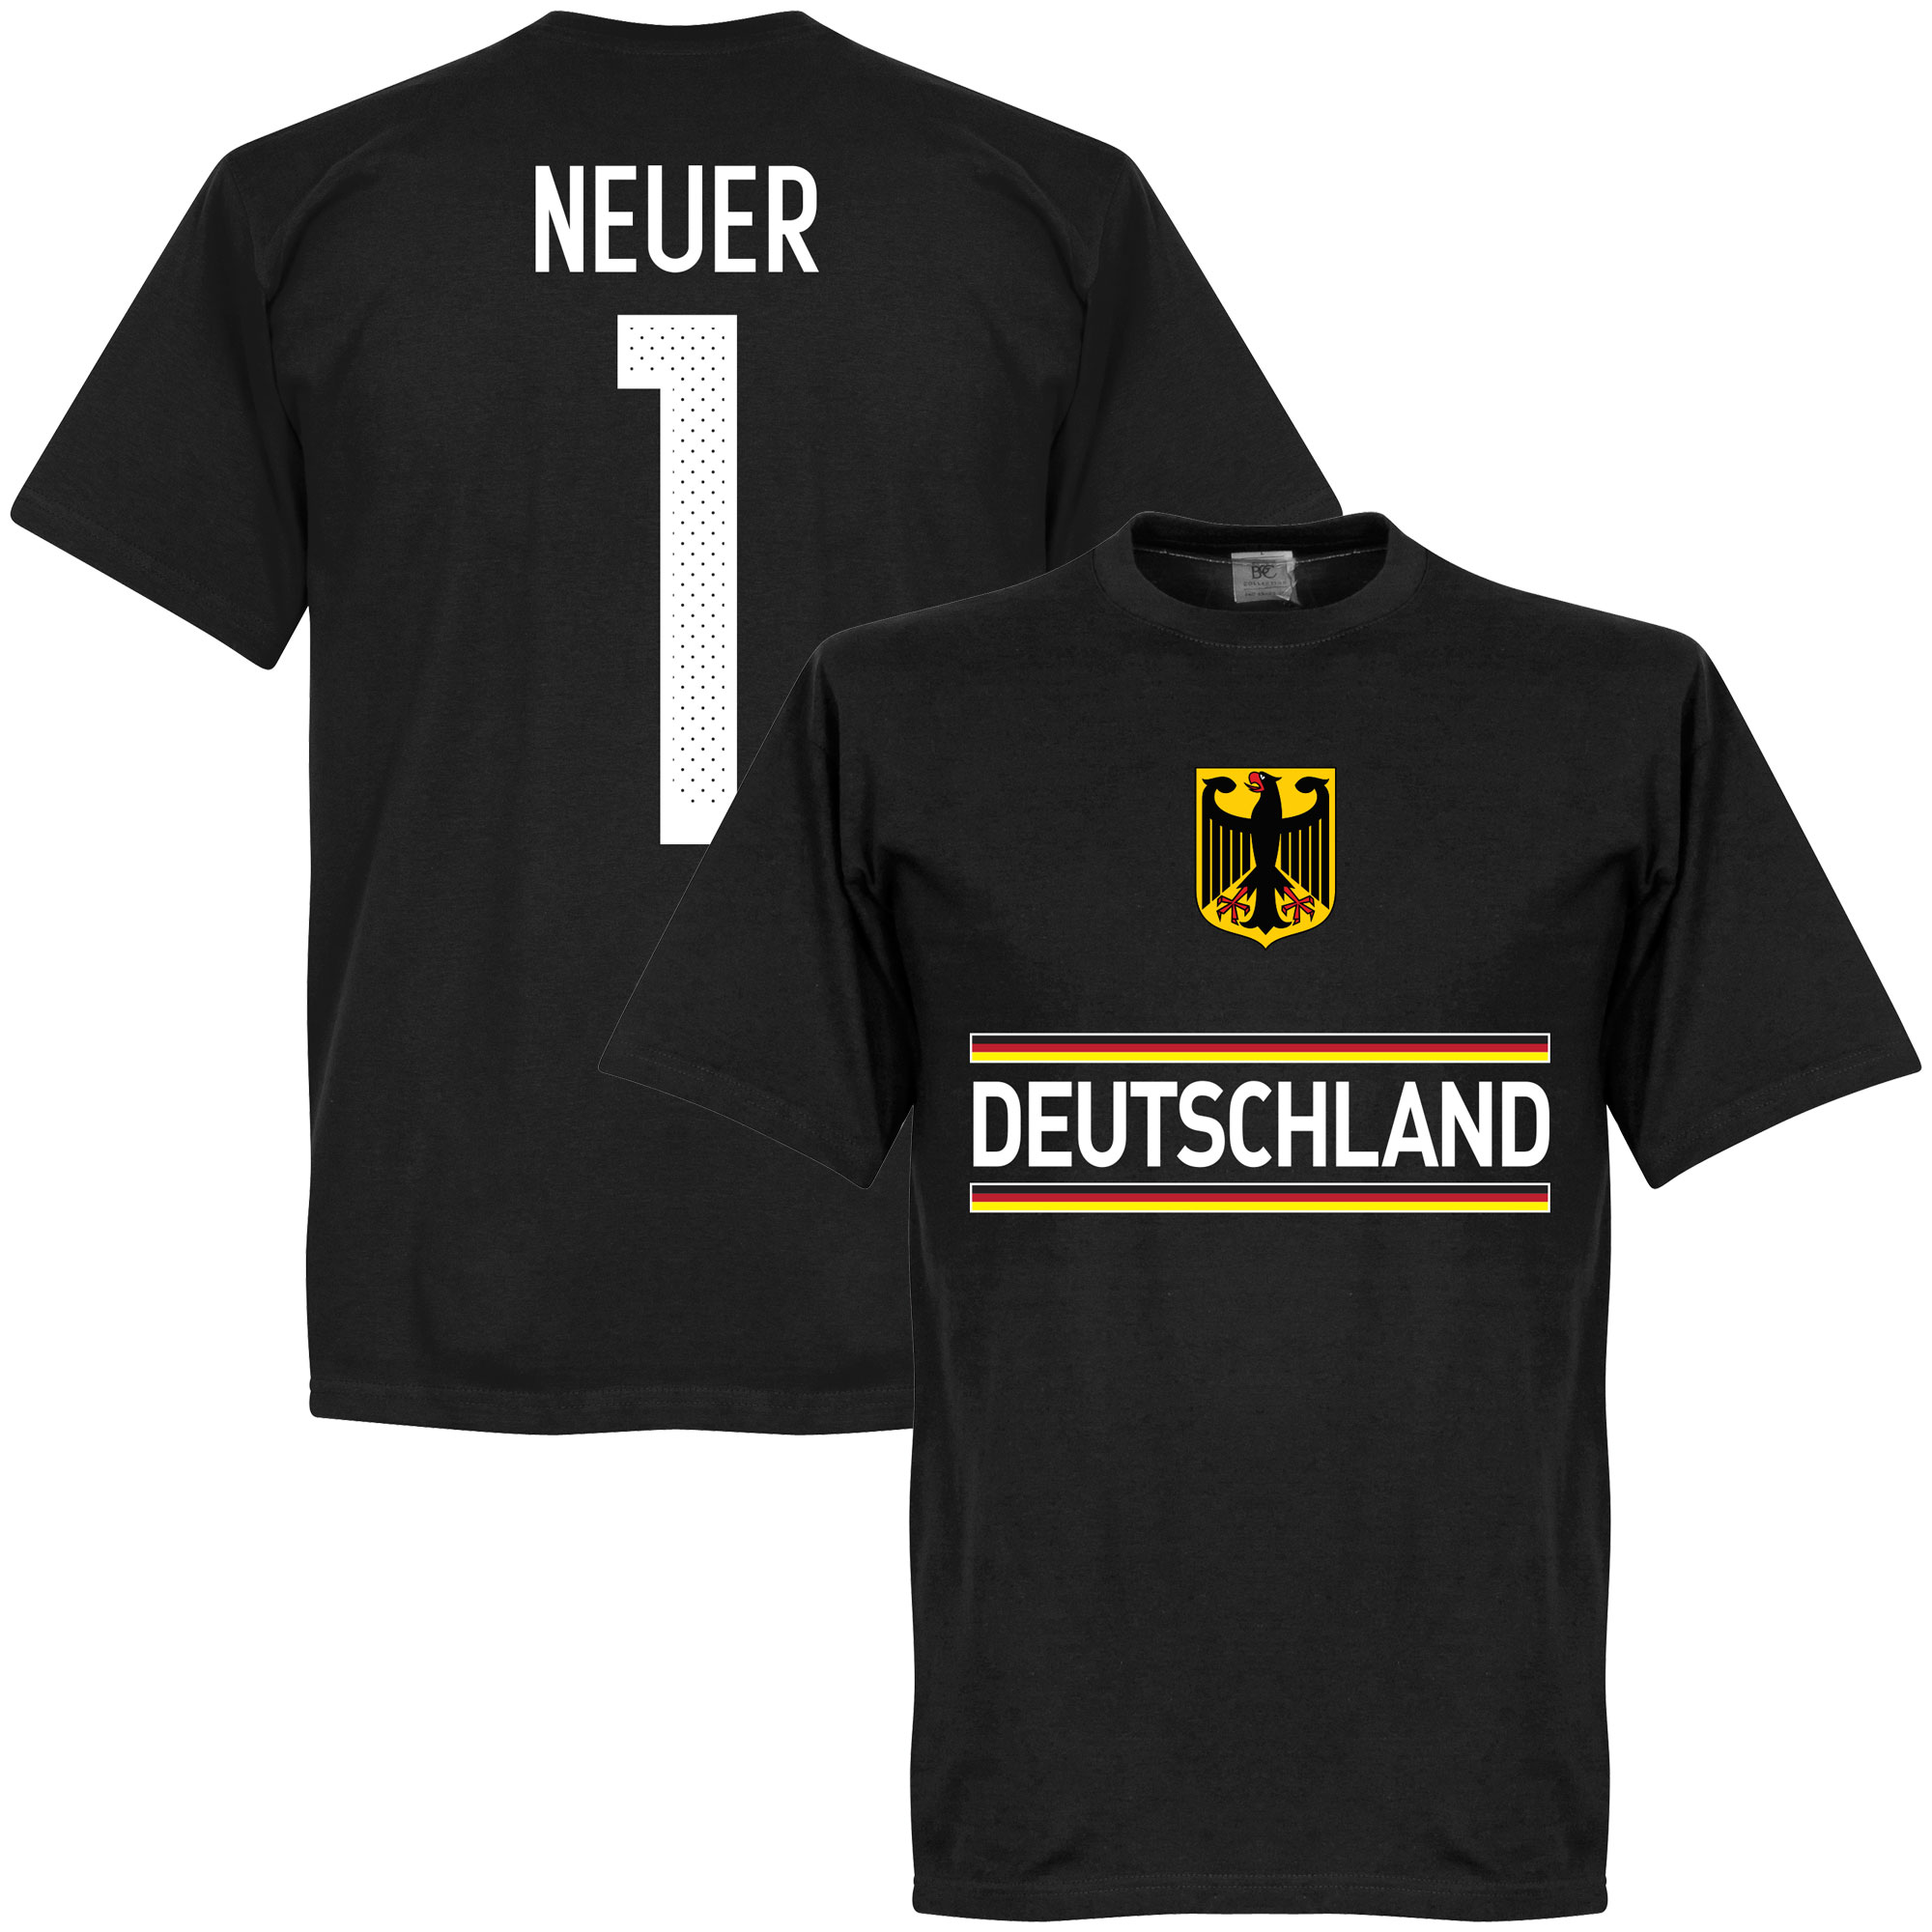 Germany Neuer Team Tee - Black - XS